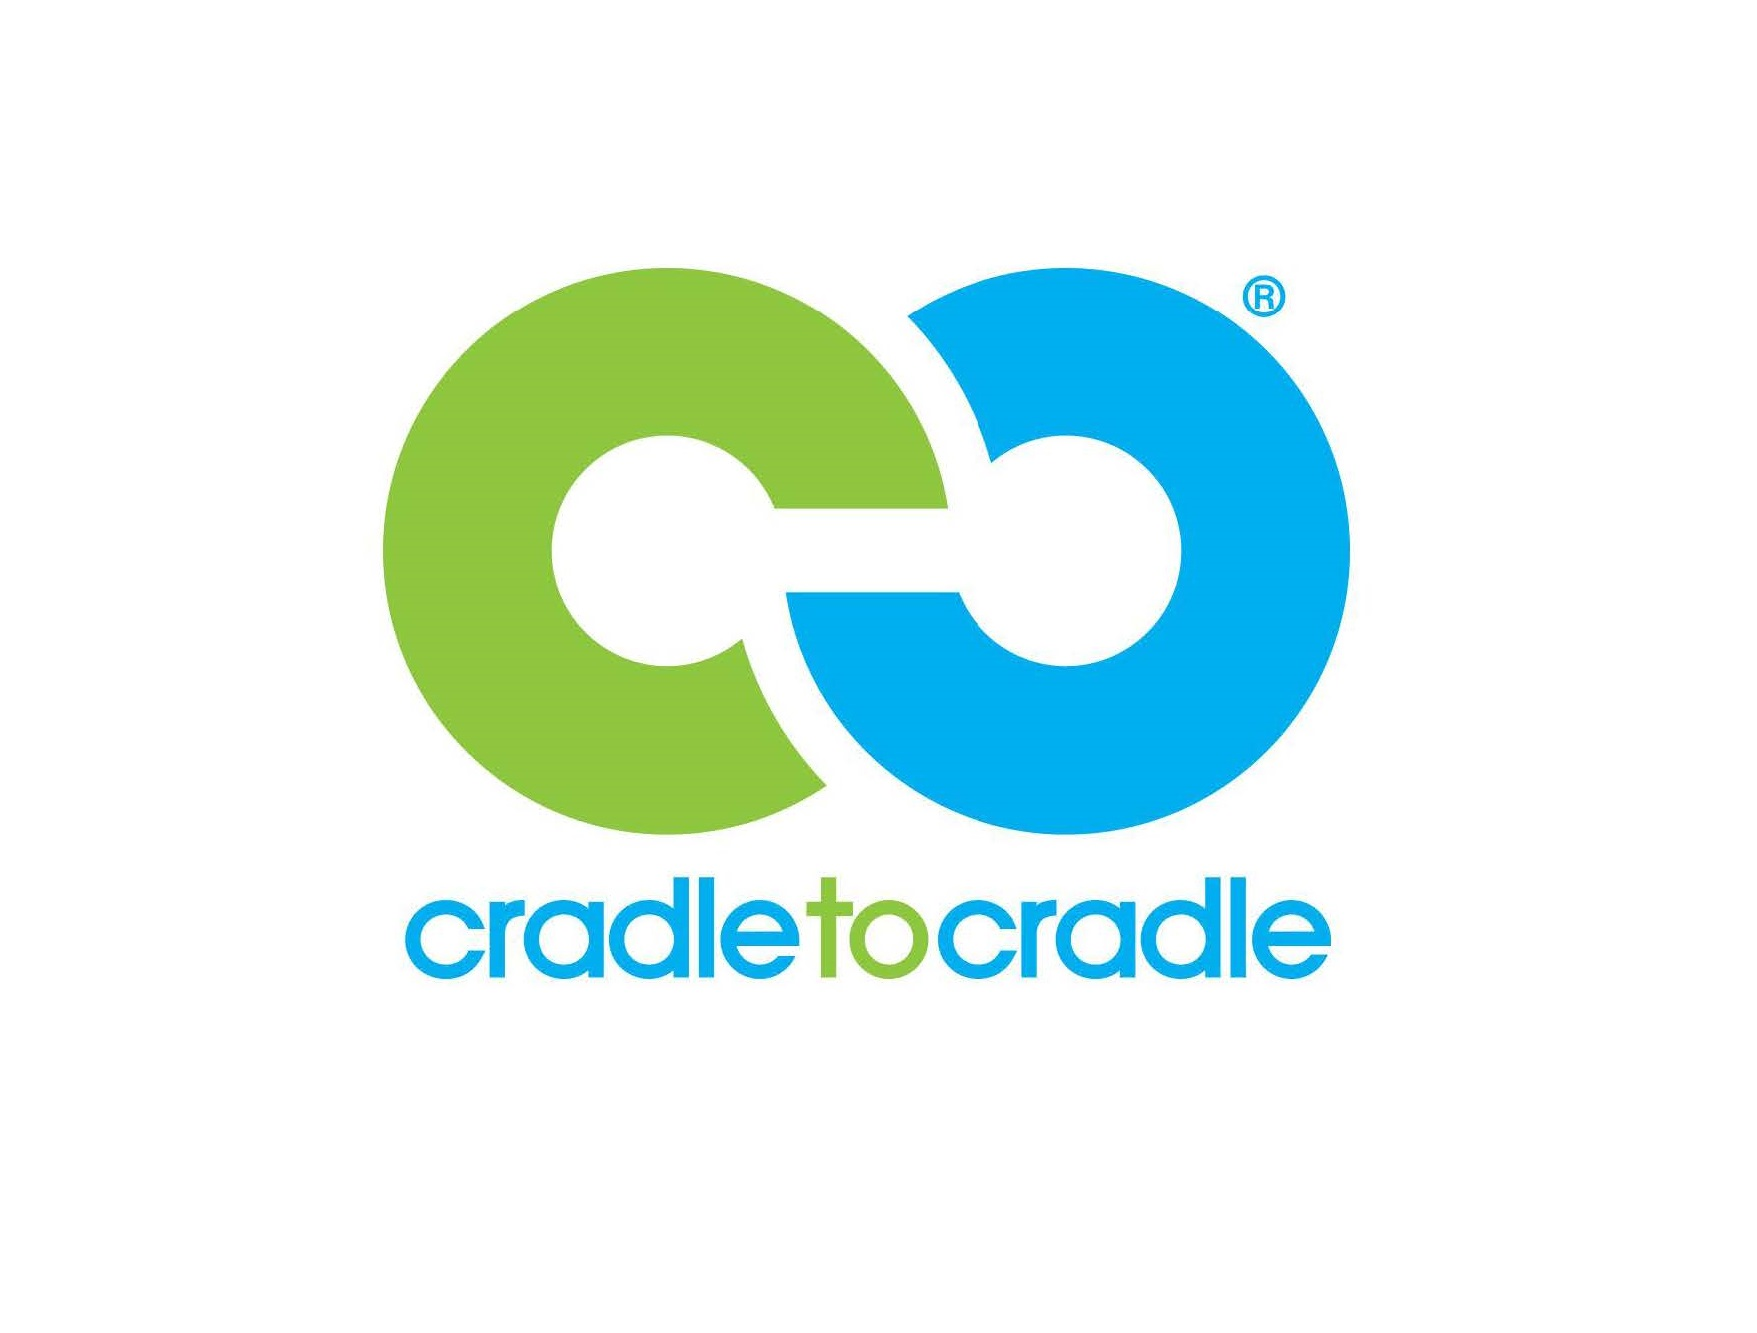 Arctic Paper Receives Cradle To Cradle Certified Certification For A Wide Range Of Paper Products Paperfirst,Graphic Design And Photography Logo